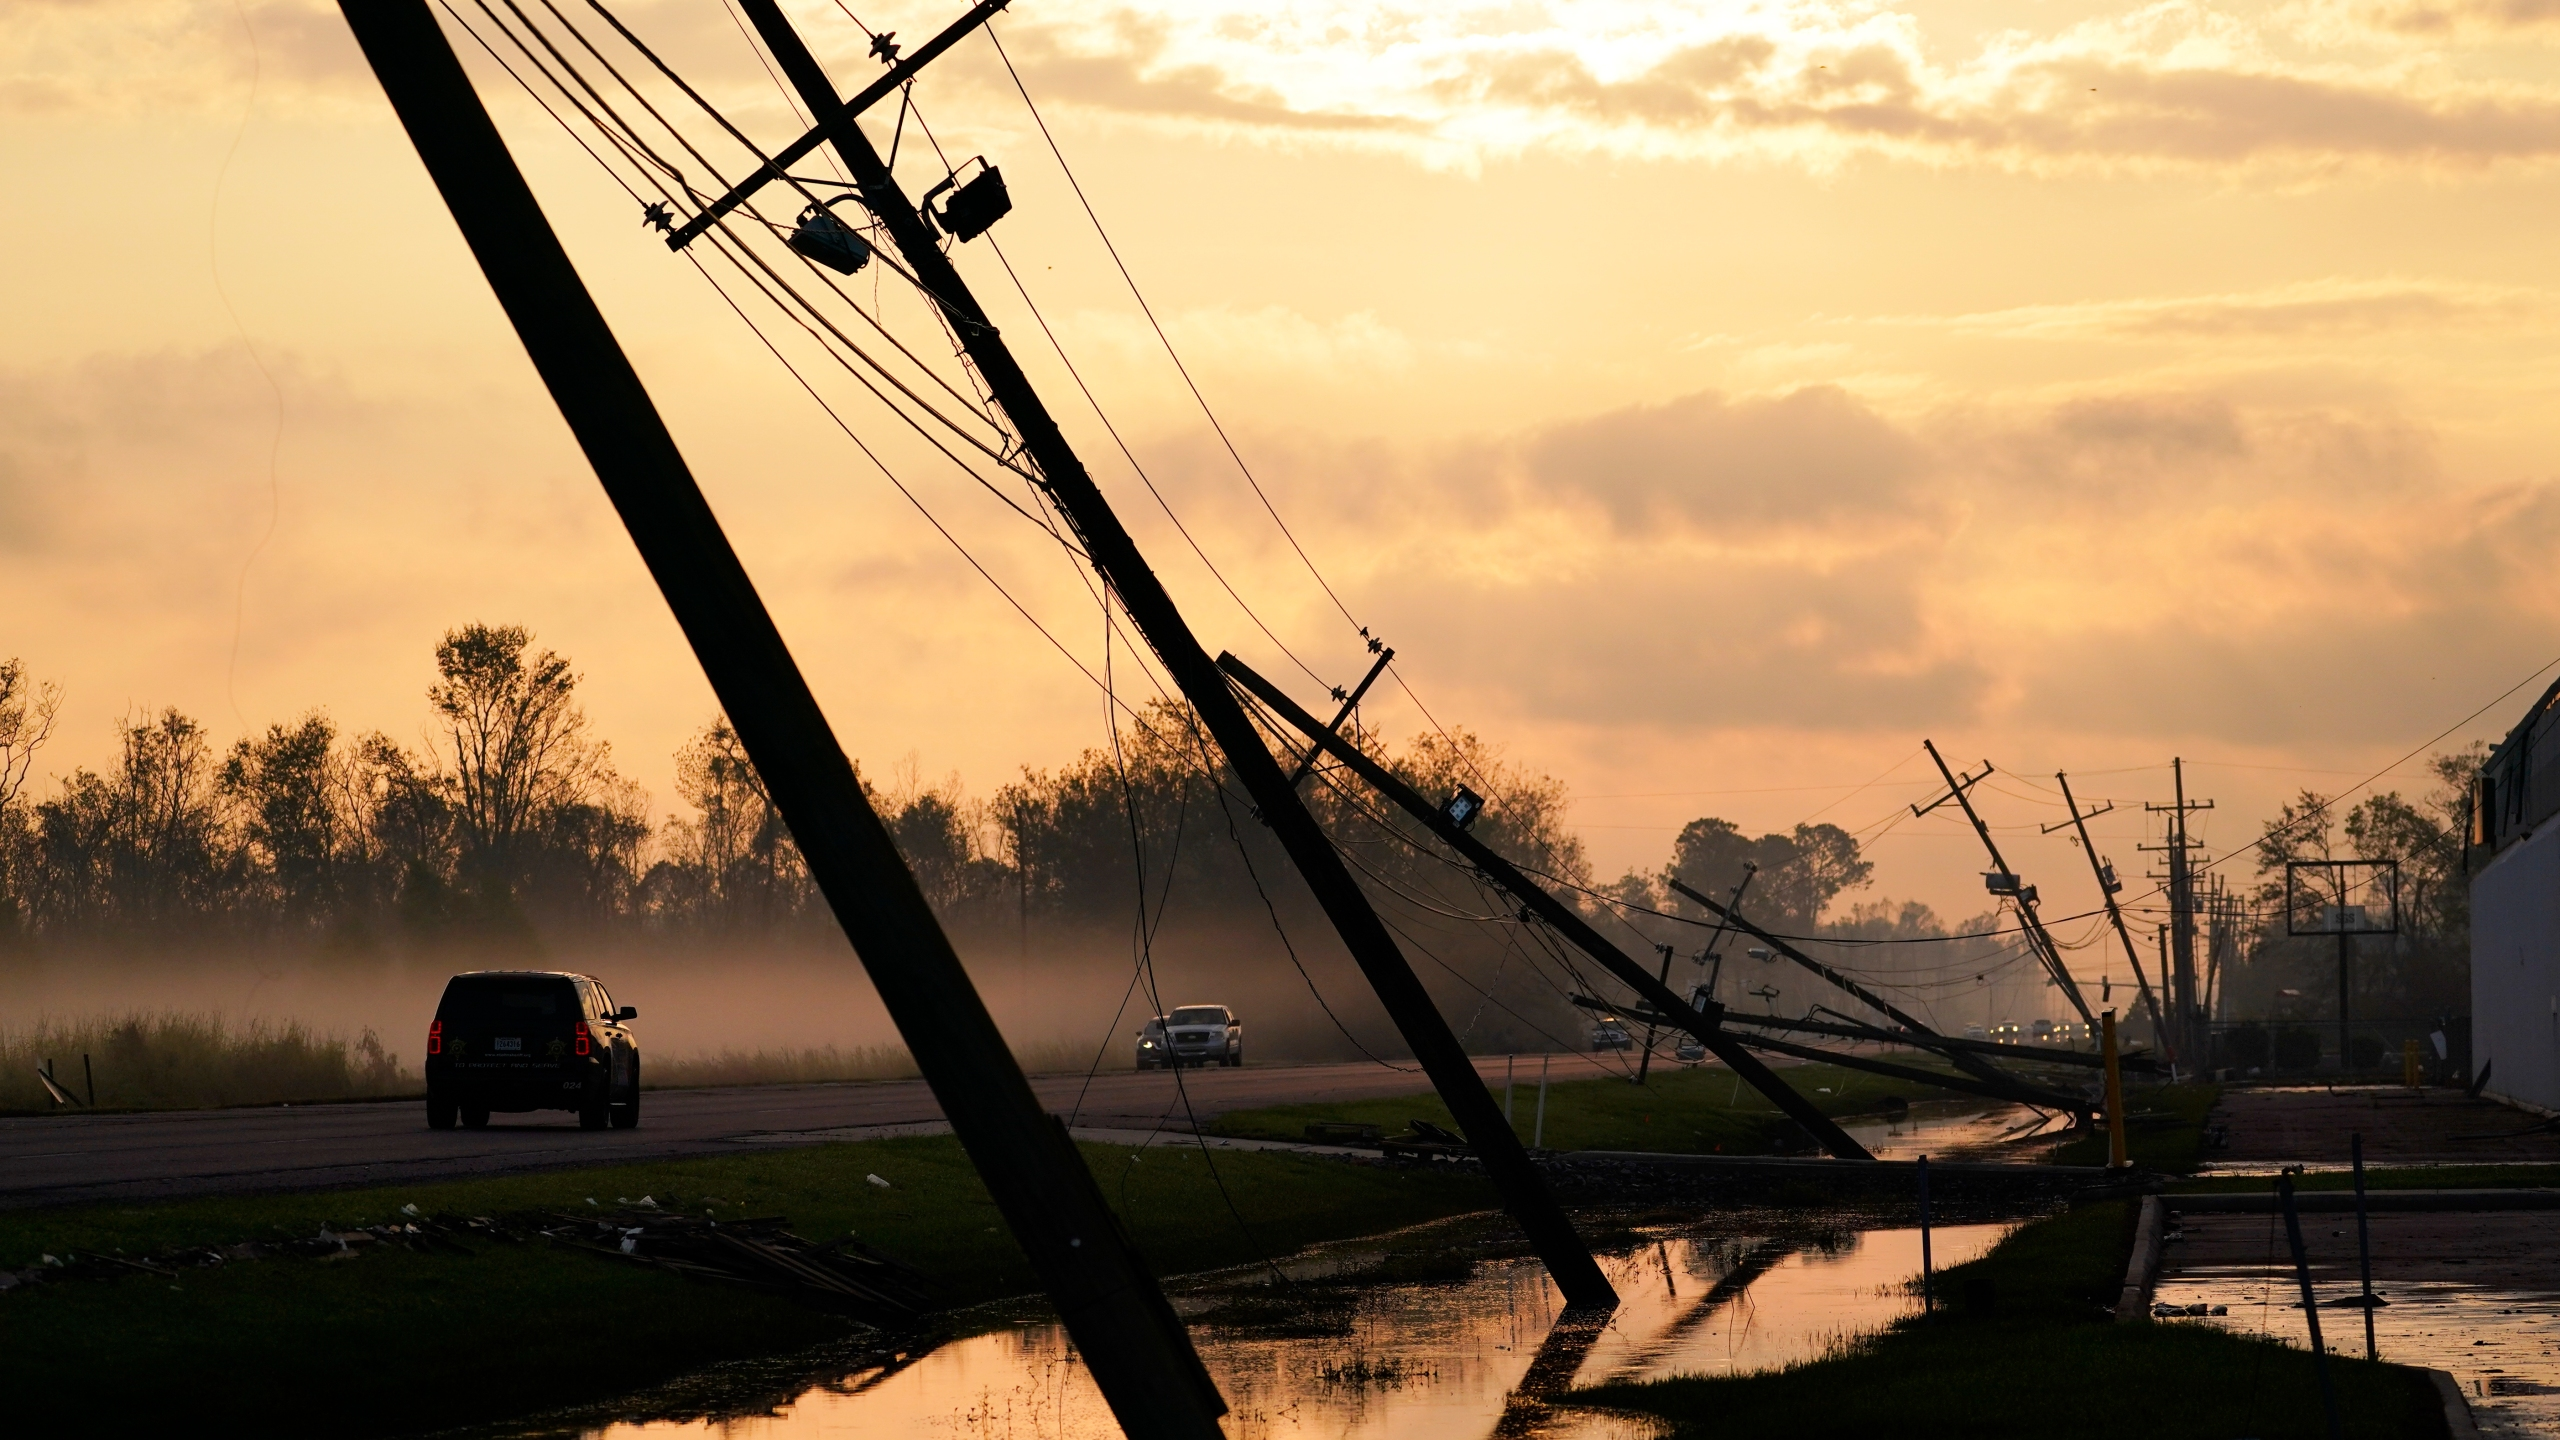 Downed power lines slump over a road in the aftermath of Hurricane Ida Sept. 3, 2021, in Reserve, Louisiana. (Matt Slocum/Associated Press)